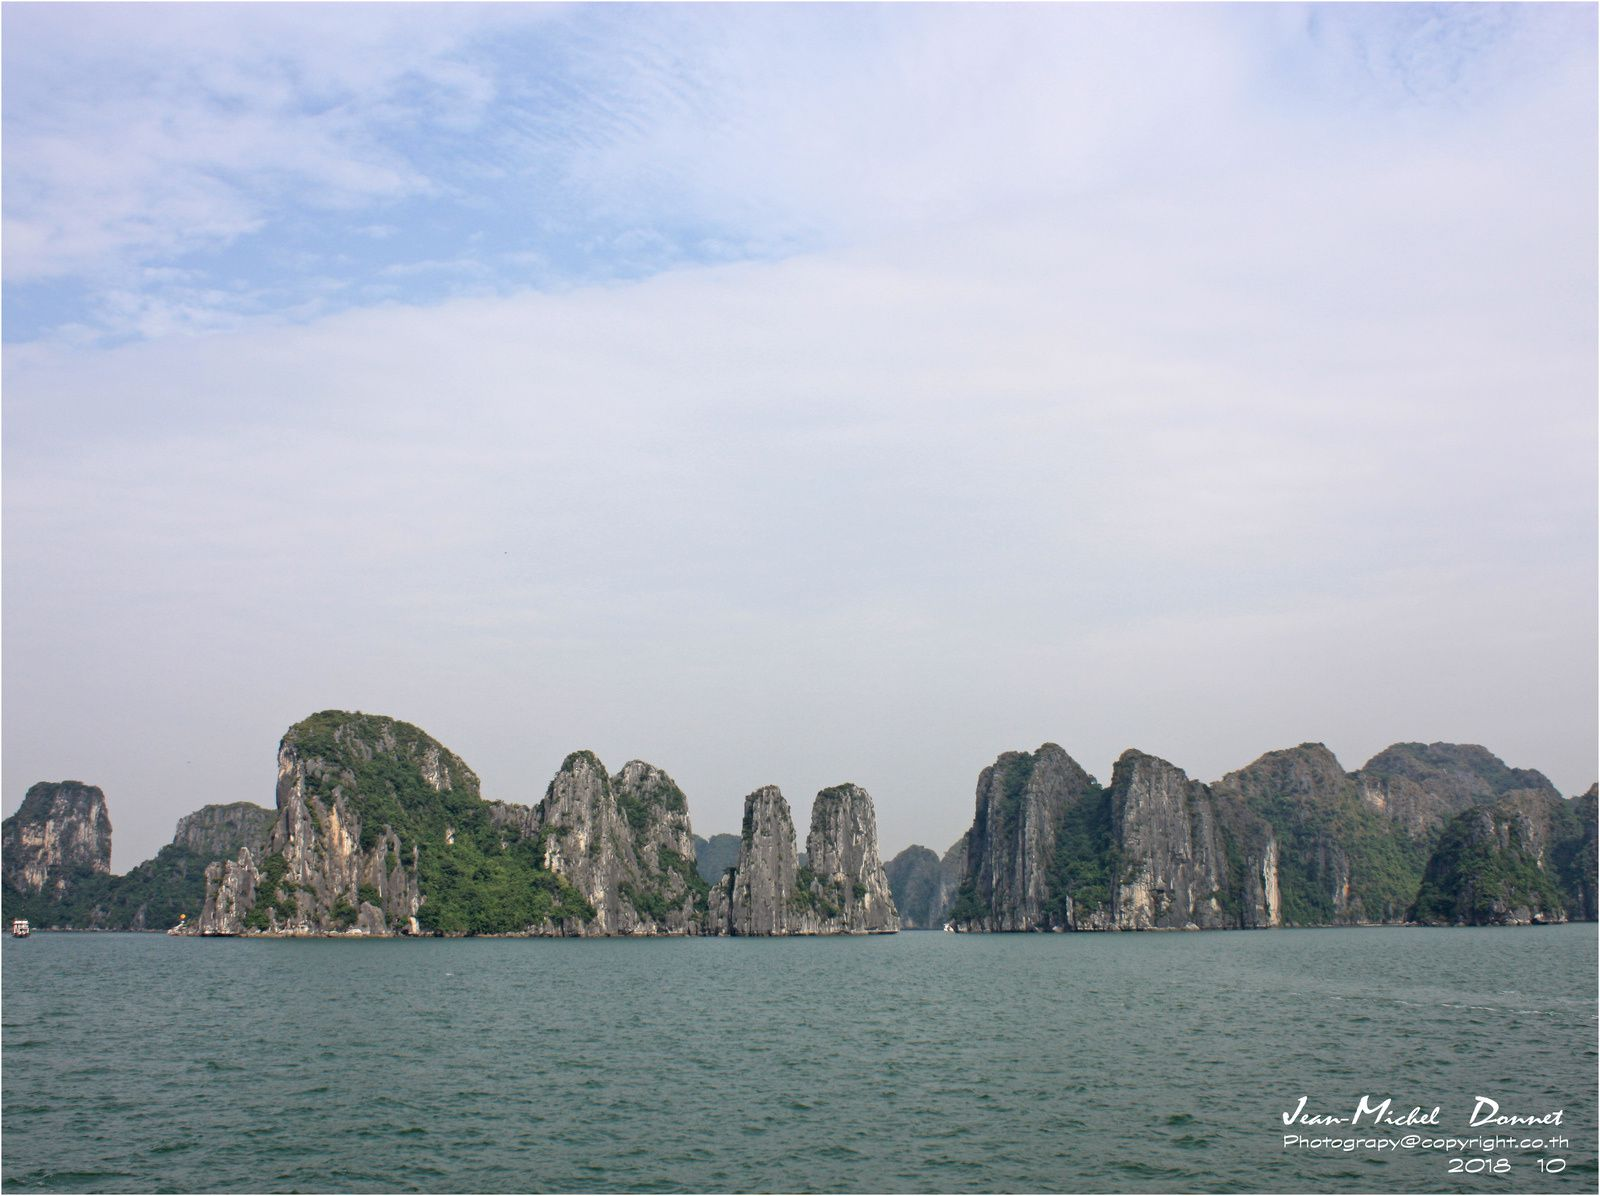 La baie d'Ha Long (Vietnam)